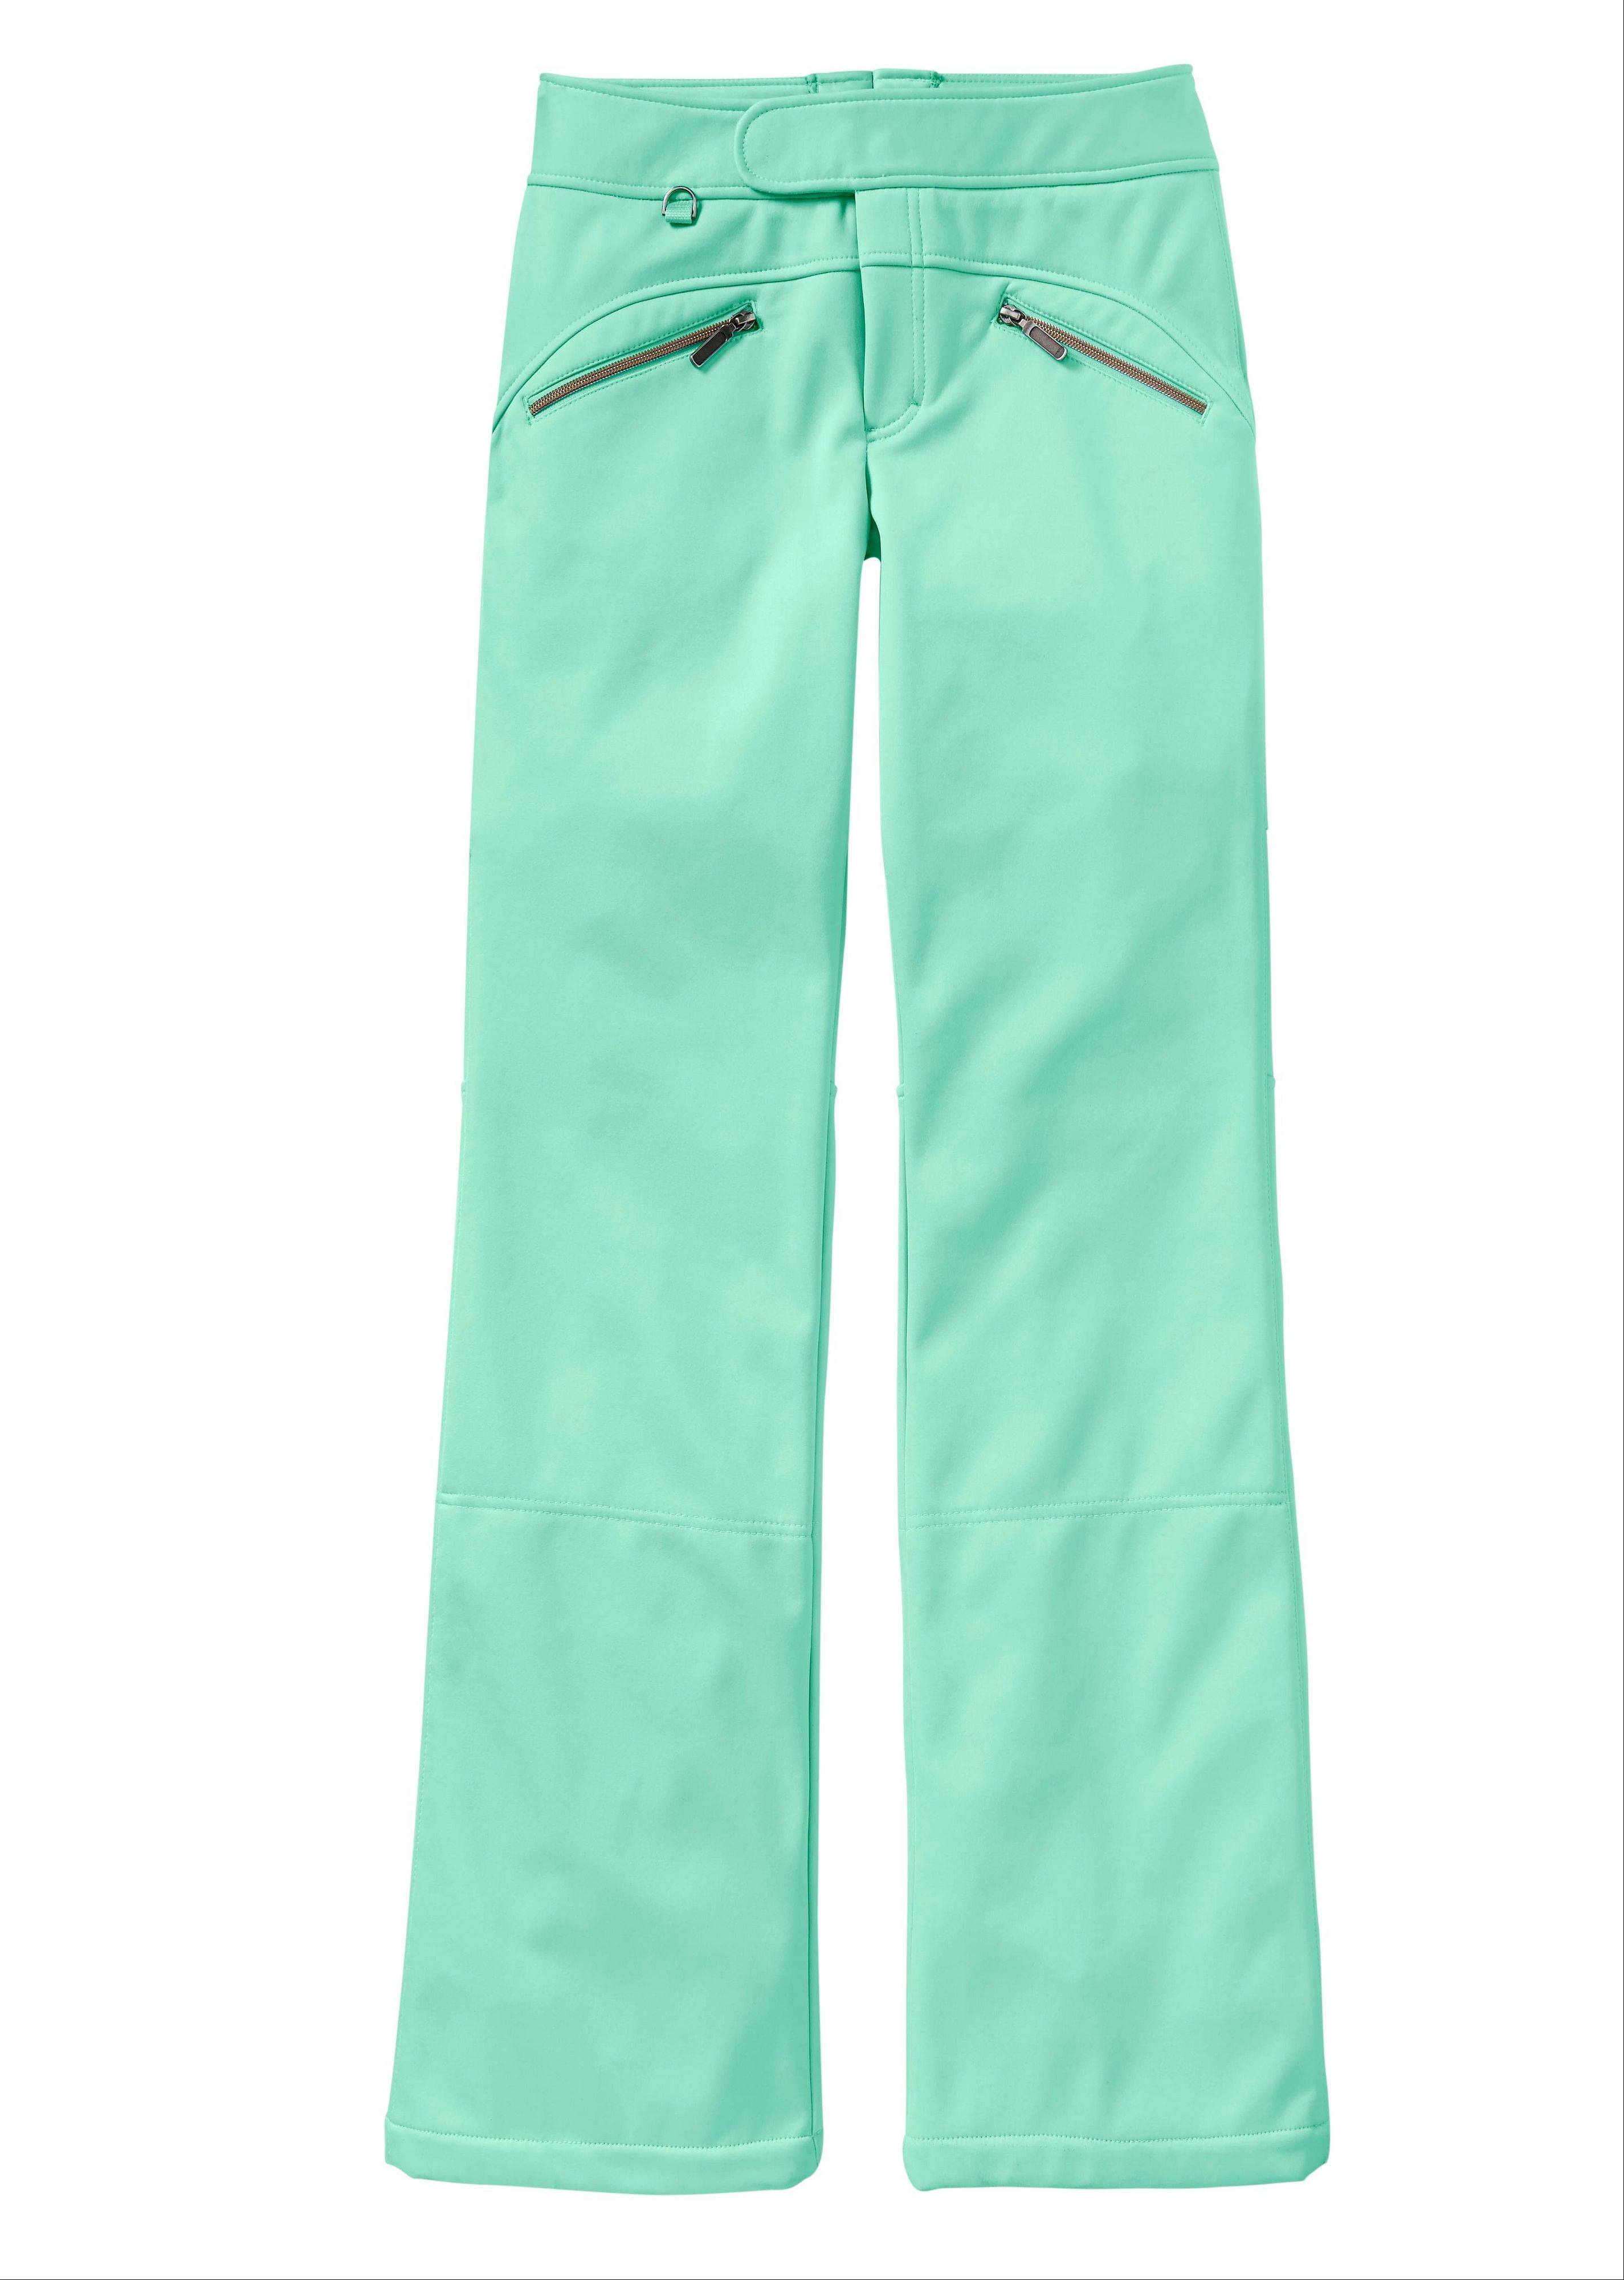 The mint green Fall Line Ski Pant from Athleta is an example of winter-sport outerwear in nontraditional, bright colors. Fueling the trend are safety and fashion factors, but also a sense of fun, say experts.